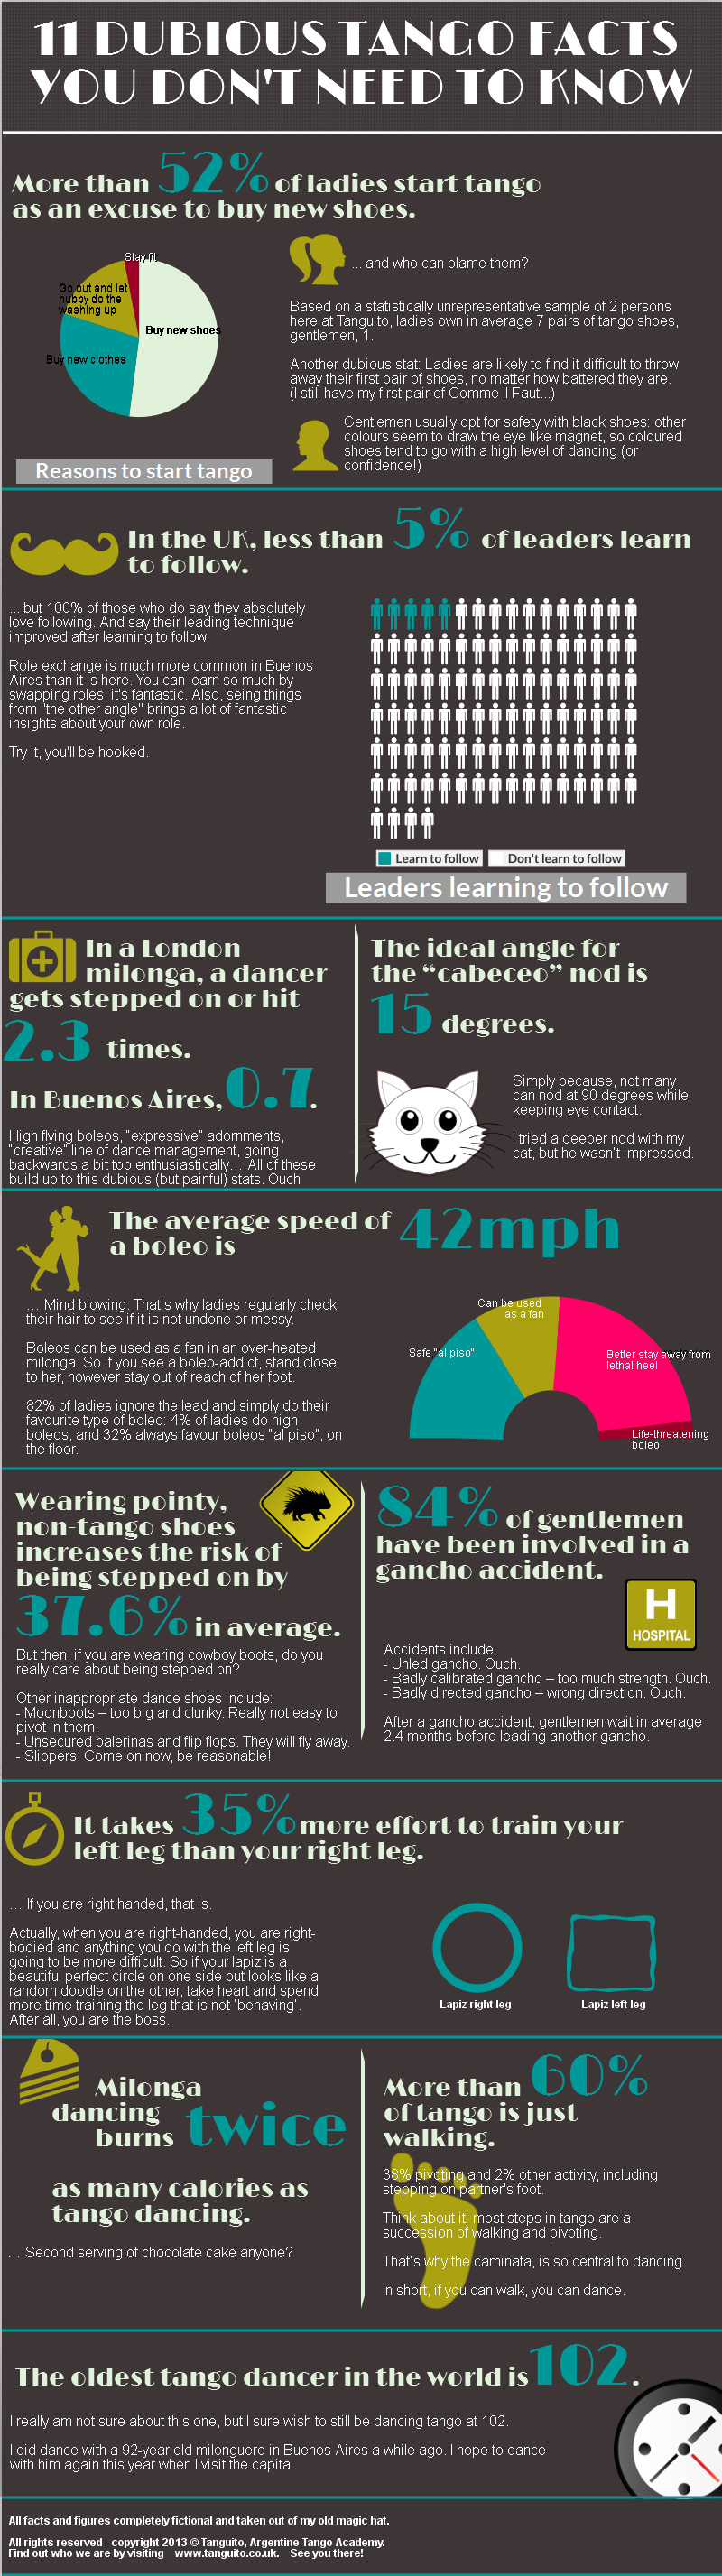 11 dubious tango facts